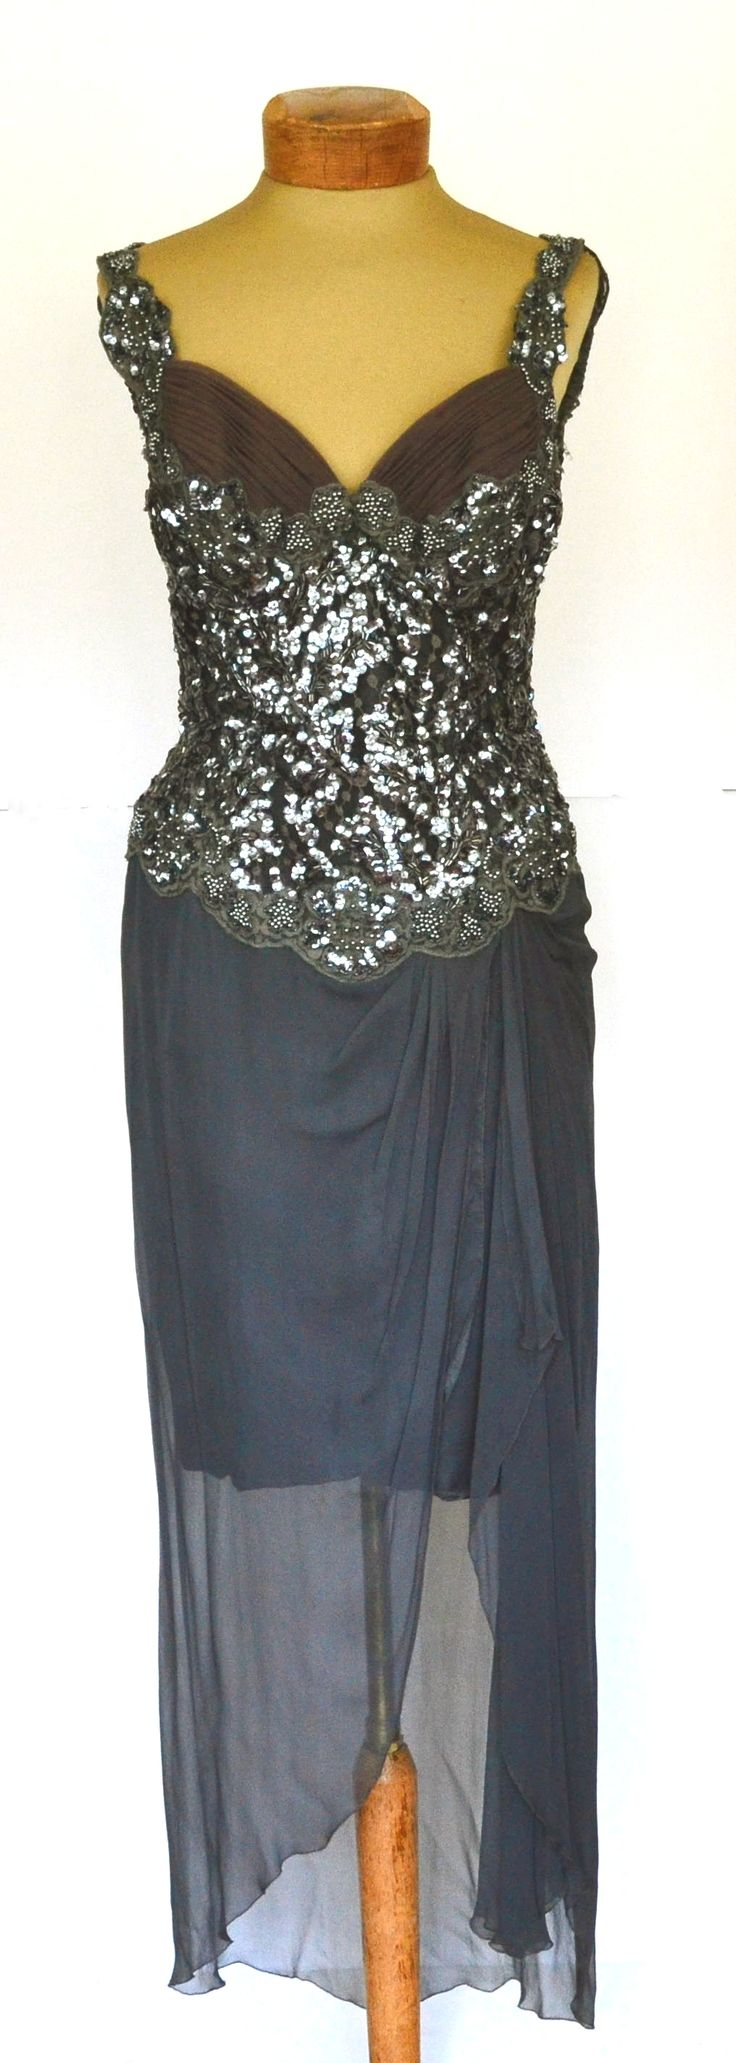 Be a knock out in this vintage sequined dress! Sequins are festive, and fun, chiffon is feminine, and soft, and a low ruched bust-line is sexy! A great combination! The unique skirt of this vintage Bergdorf Goodman dress hits at knee, with a longer layer of sheer chiffon over that gathers off center. Very intriguing.  This vintage 1990s dress has a fully sequined bodice in gray and silver beads and sequins. Ruched, and gathered mesh bust in a sweetheart neckline. Sequined shoulder straps ...